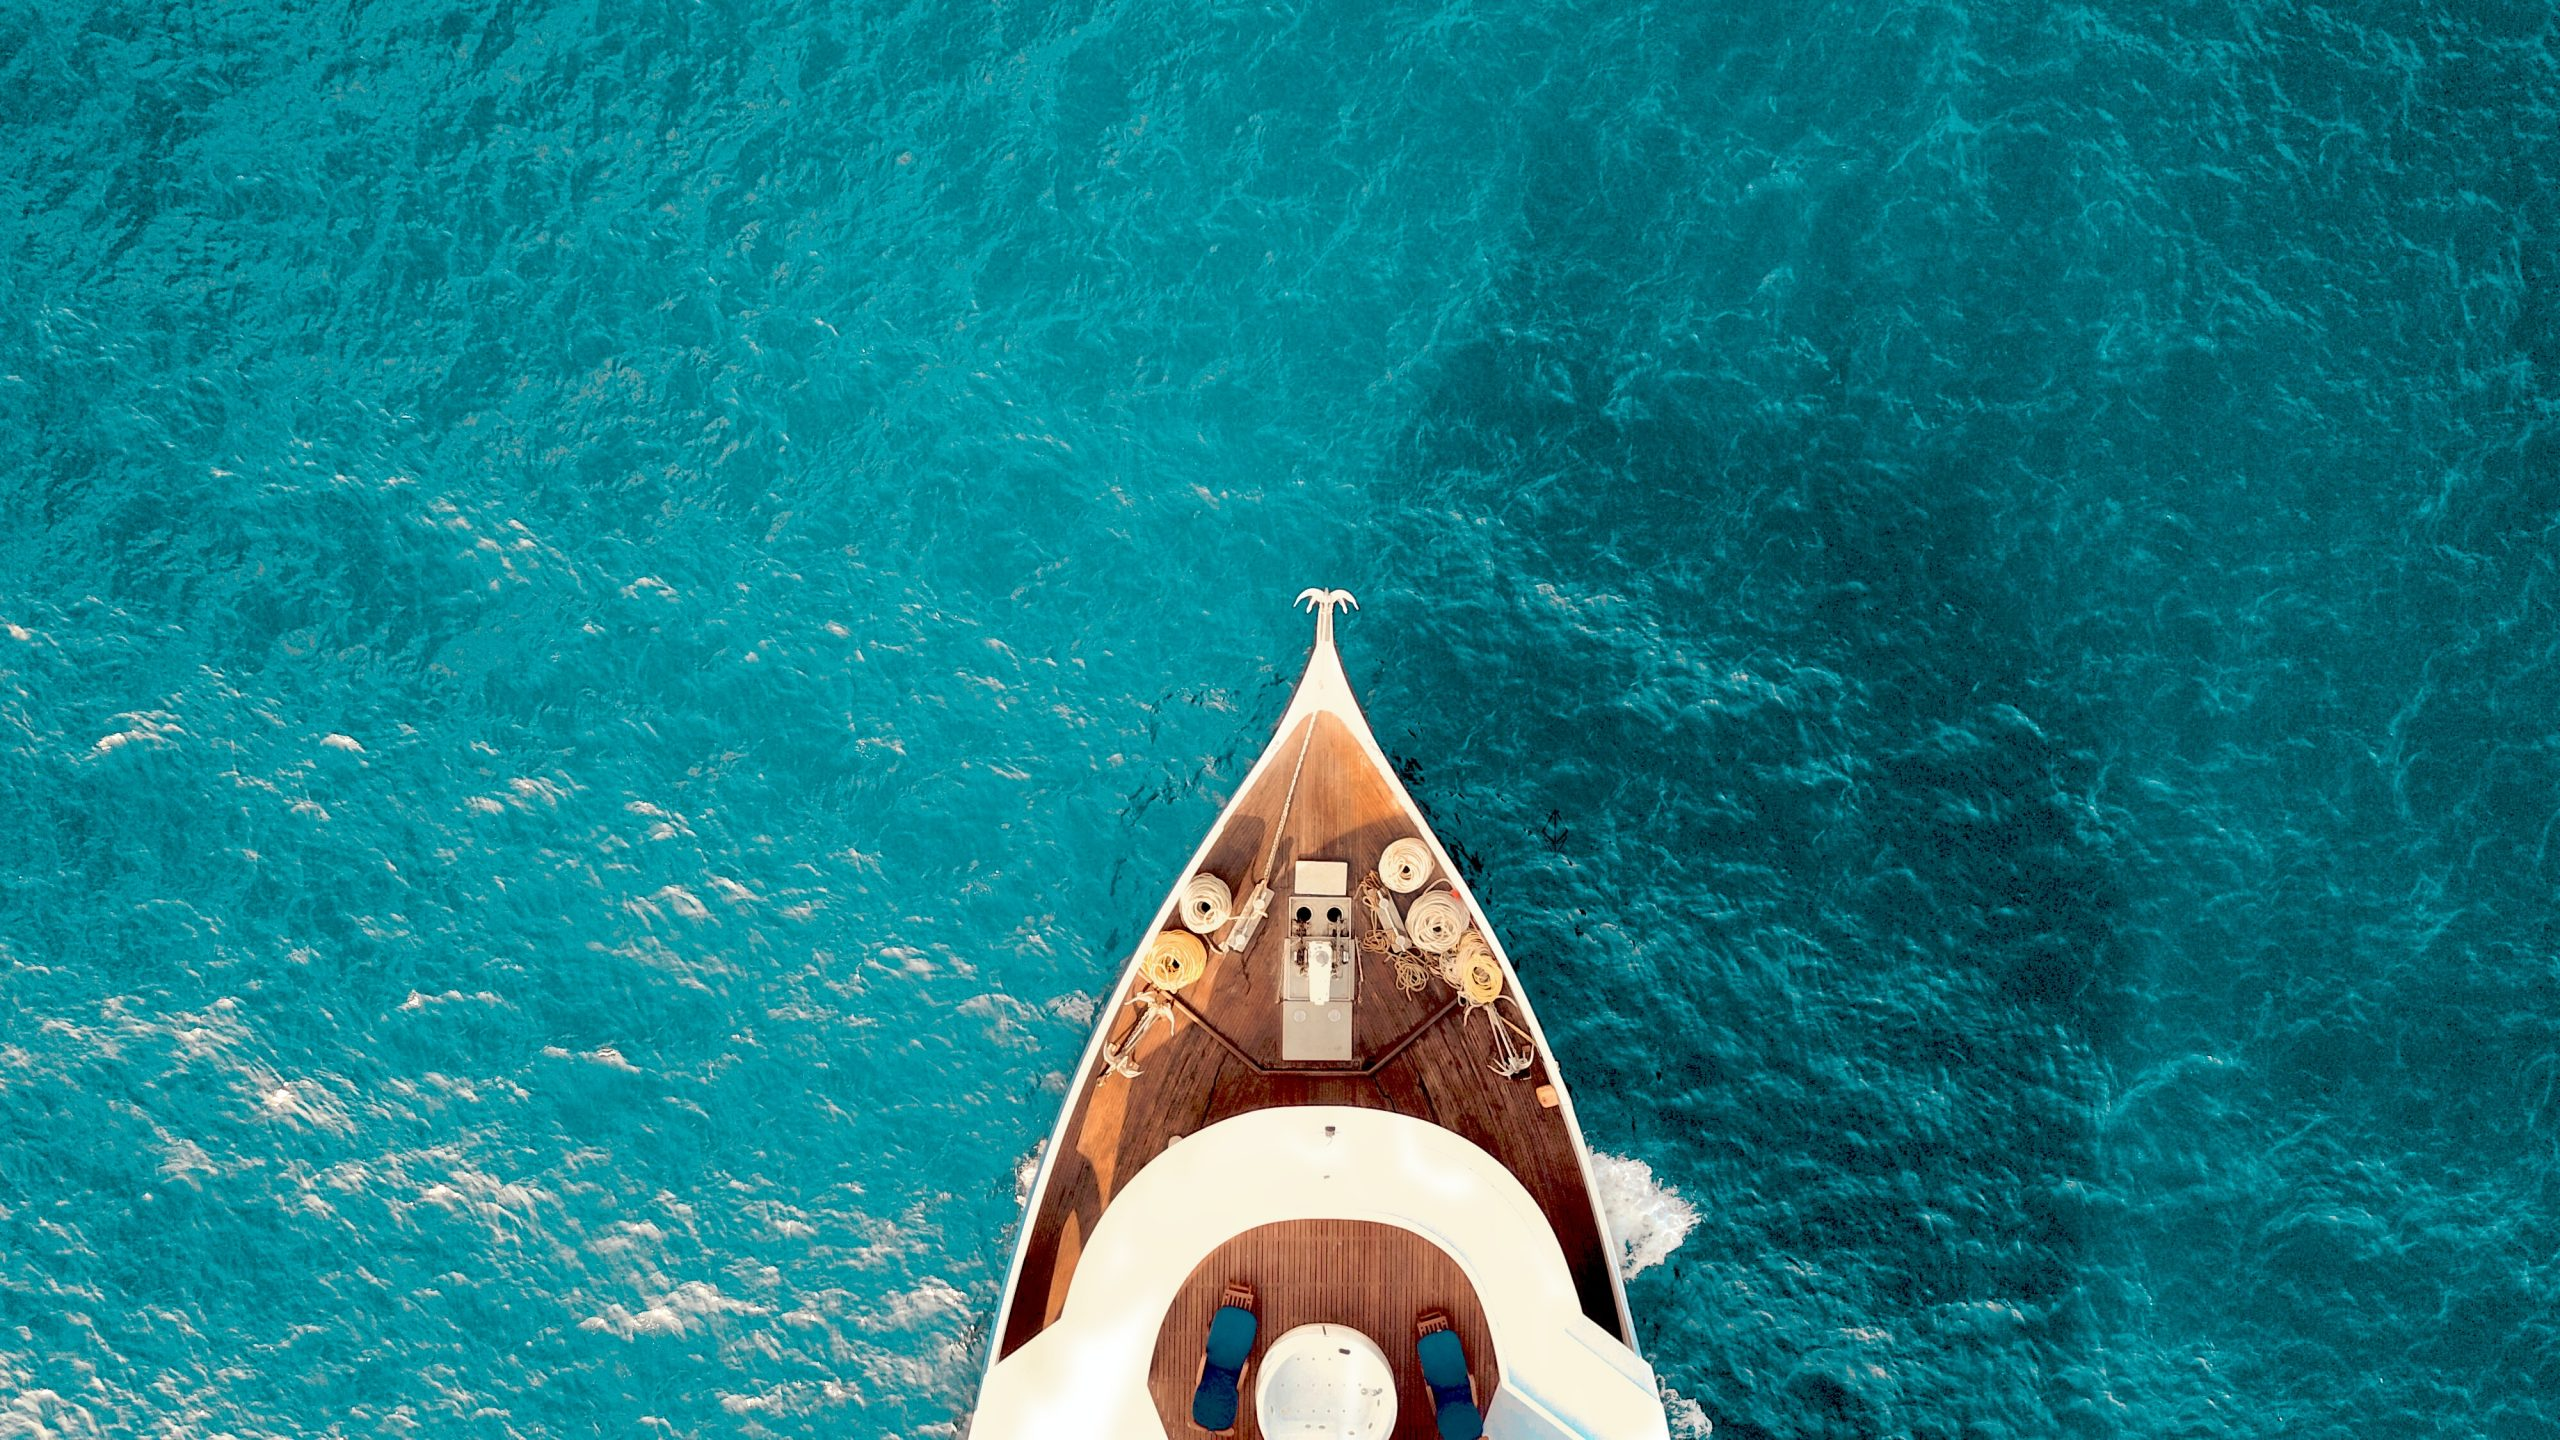 A large white yacht against a clear ocean.